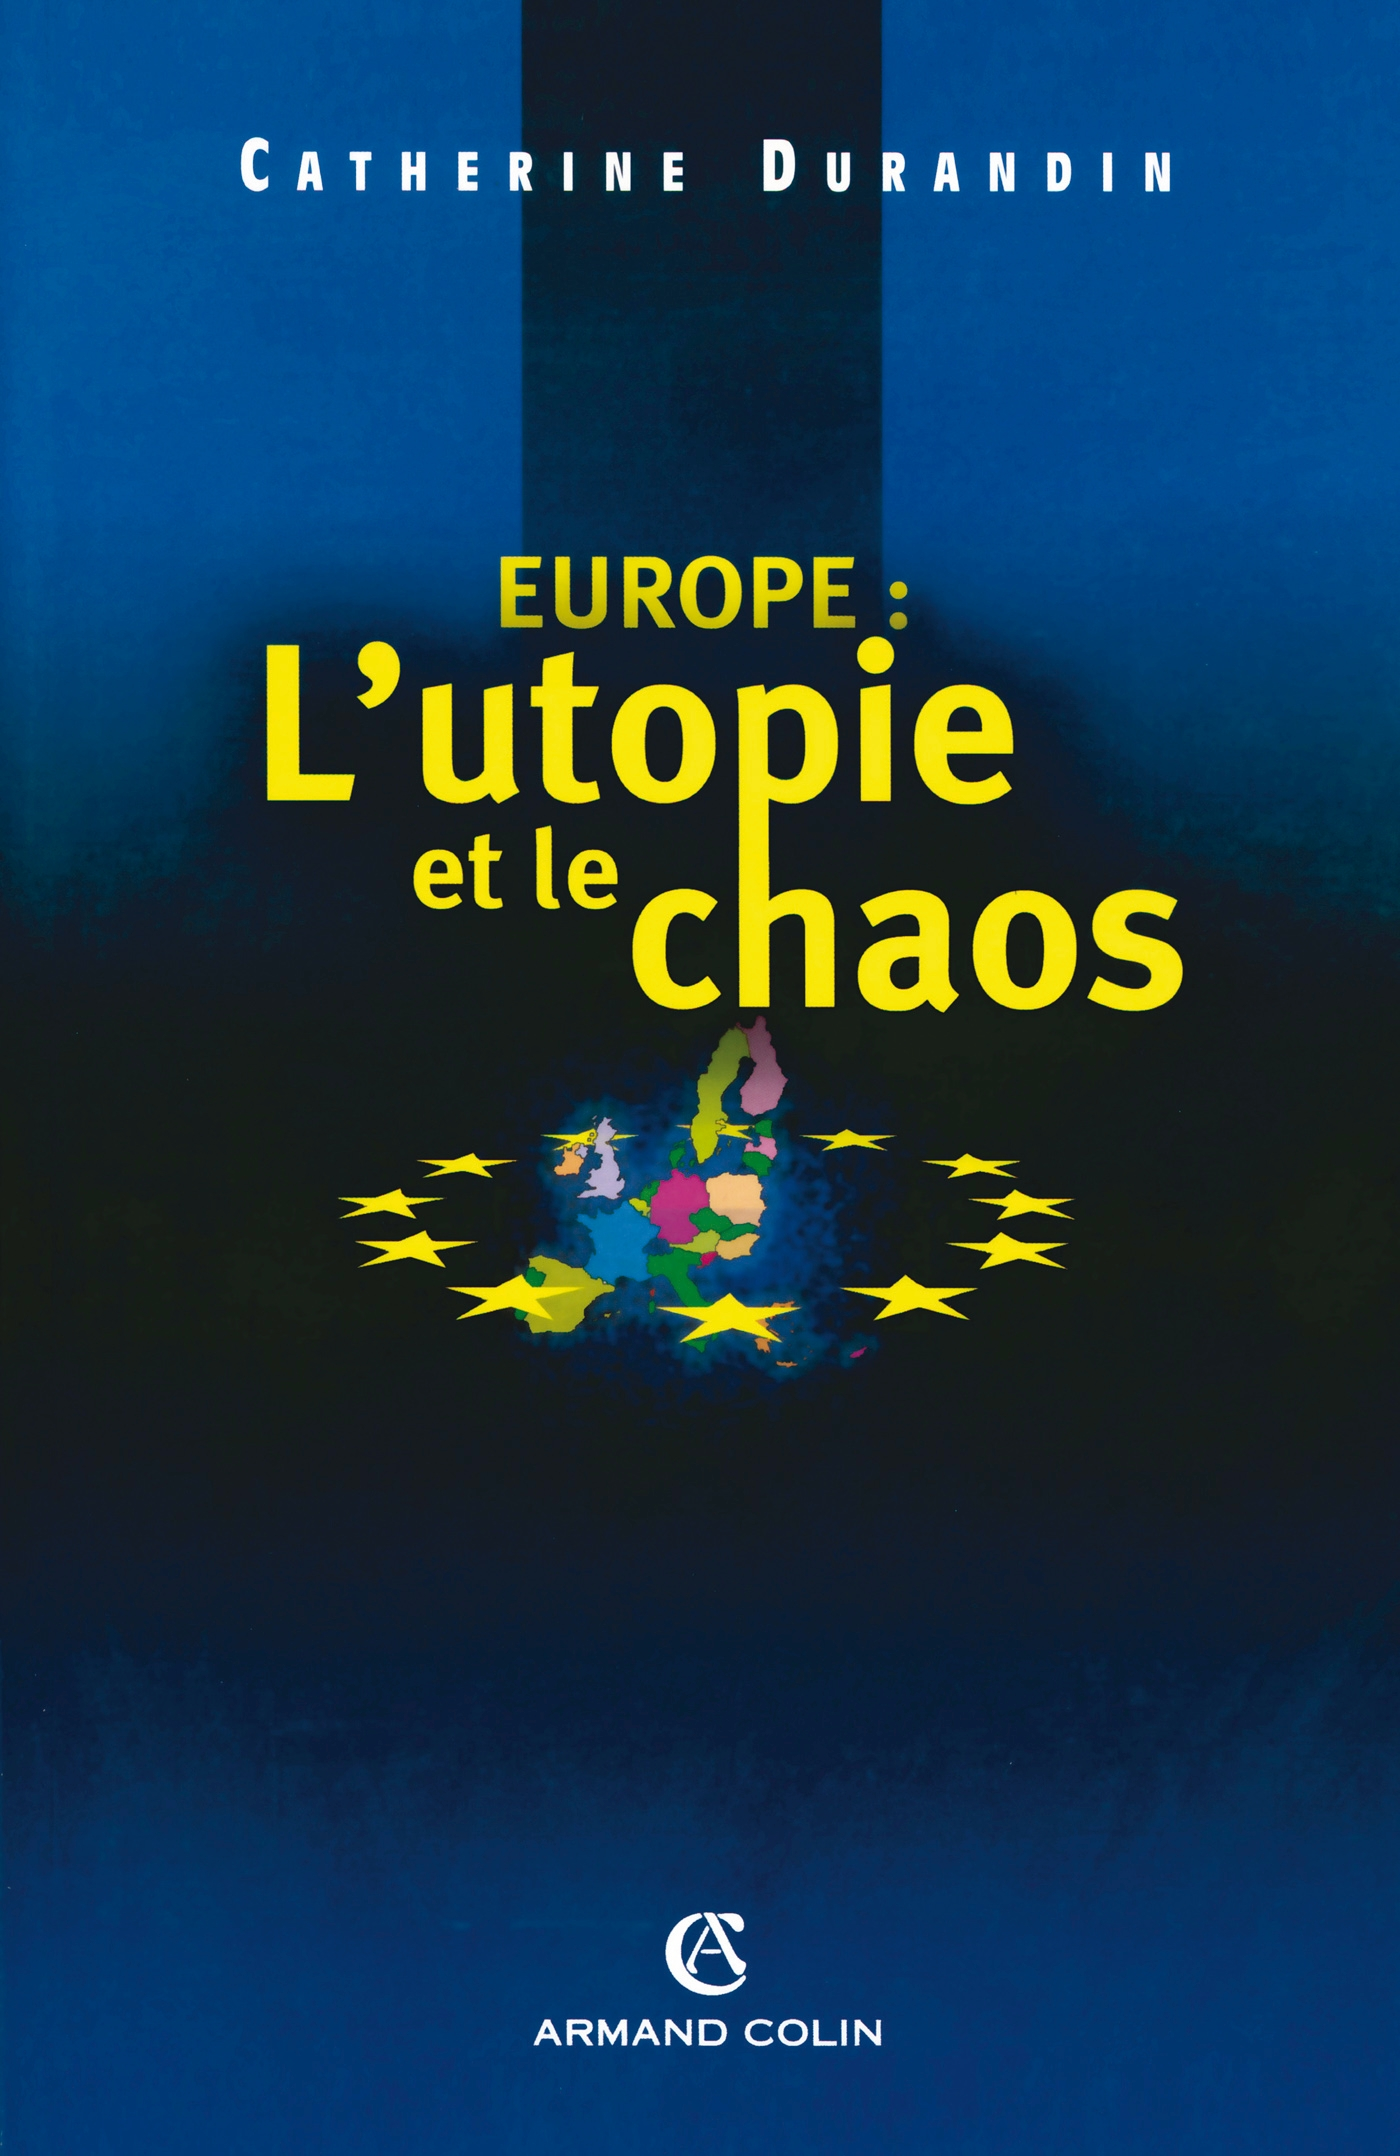 Europe : l'utopie et le chaos